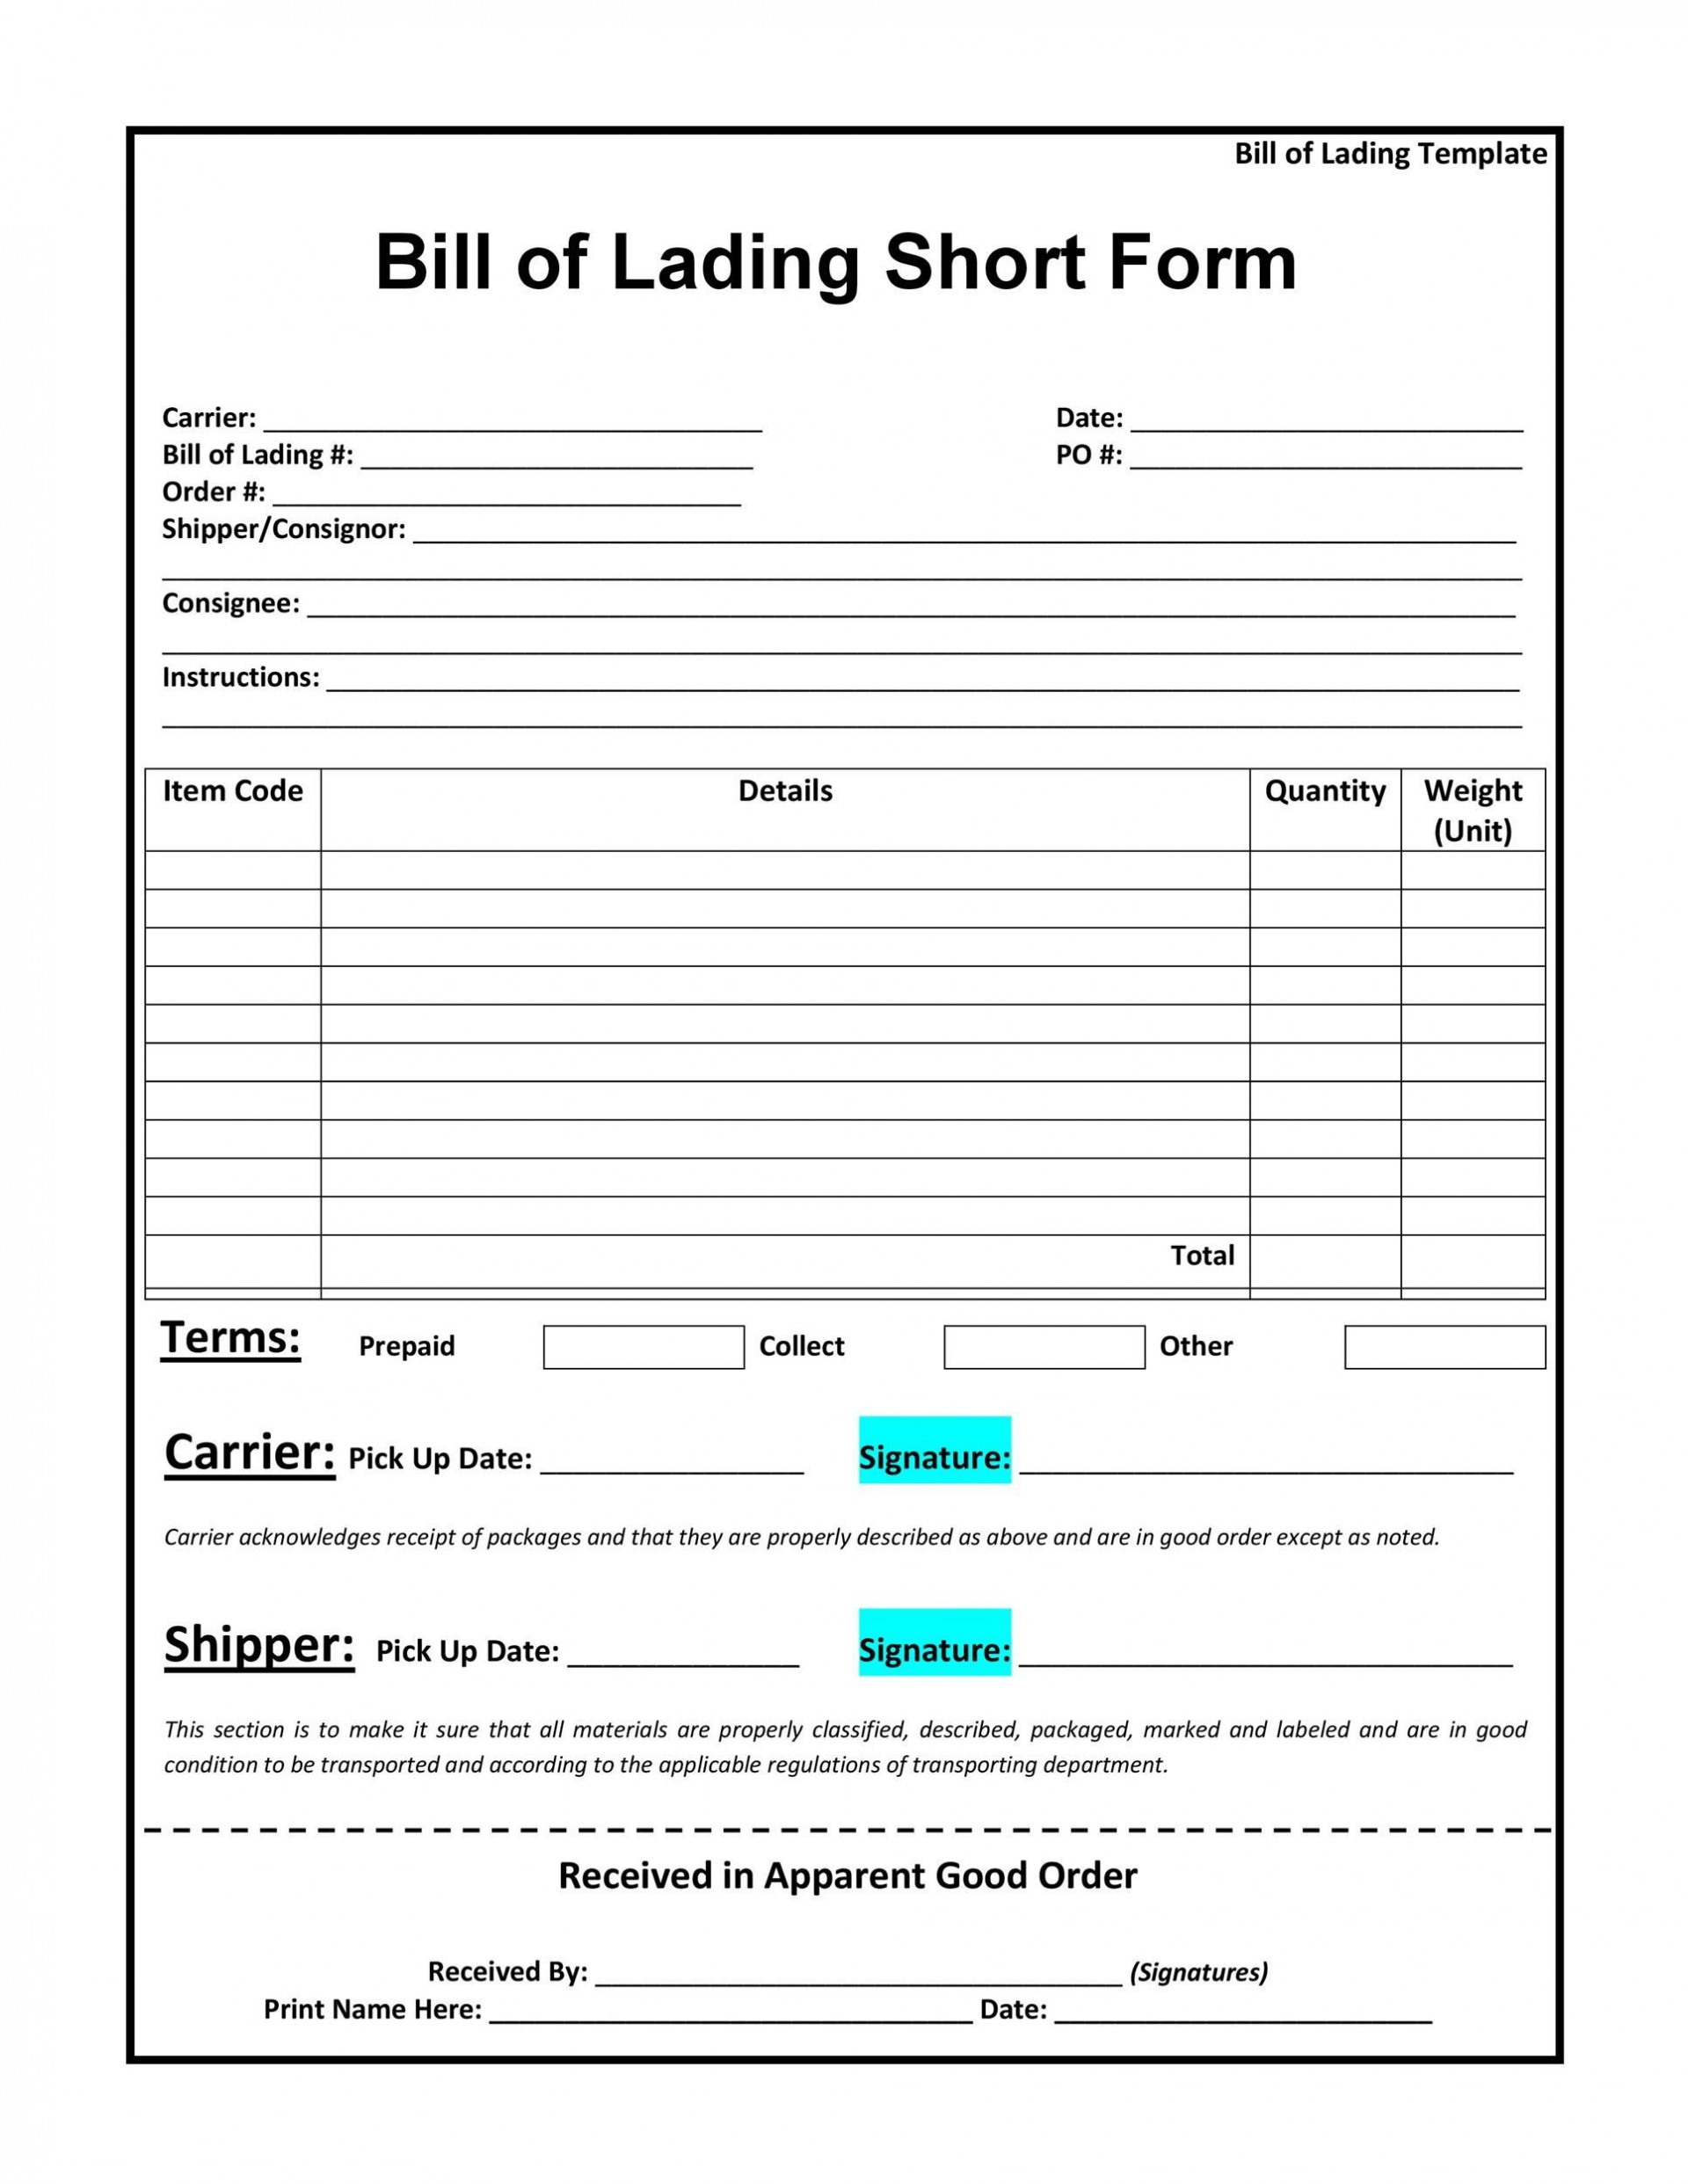 004 Formidable Bill Of Lading Template Excel Idea  Simple House Format In1920